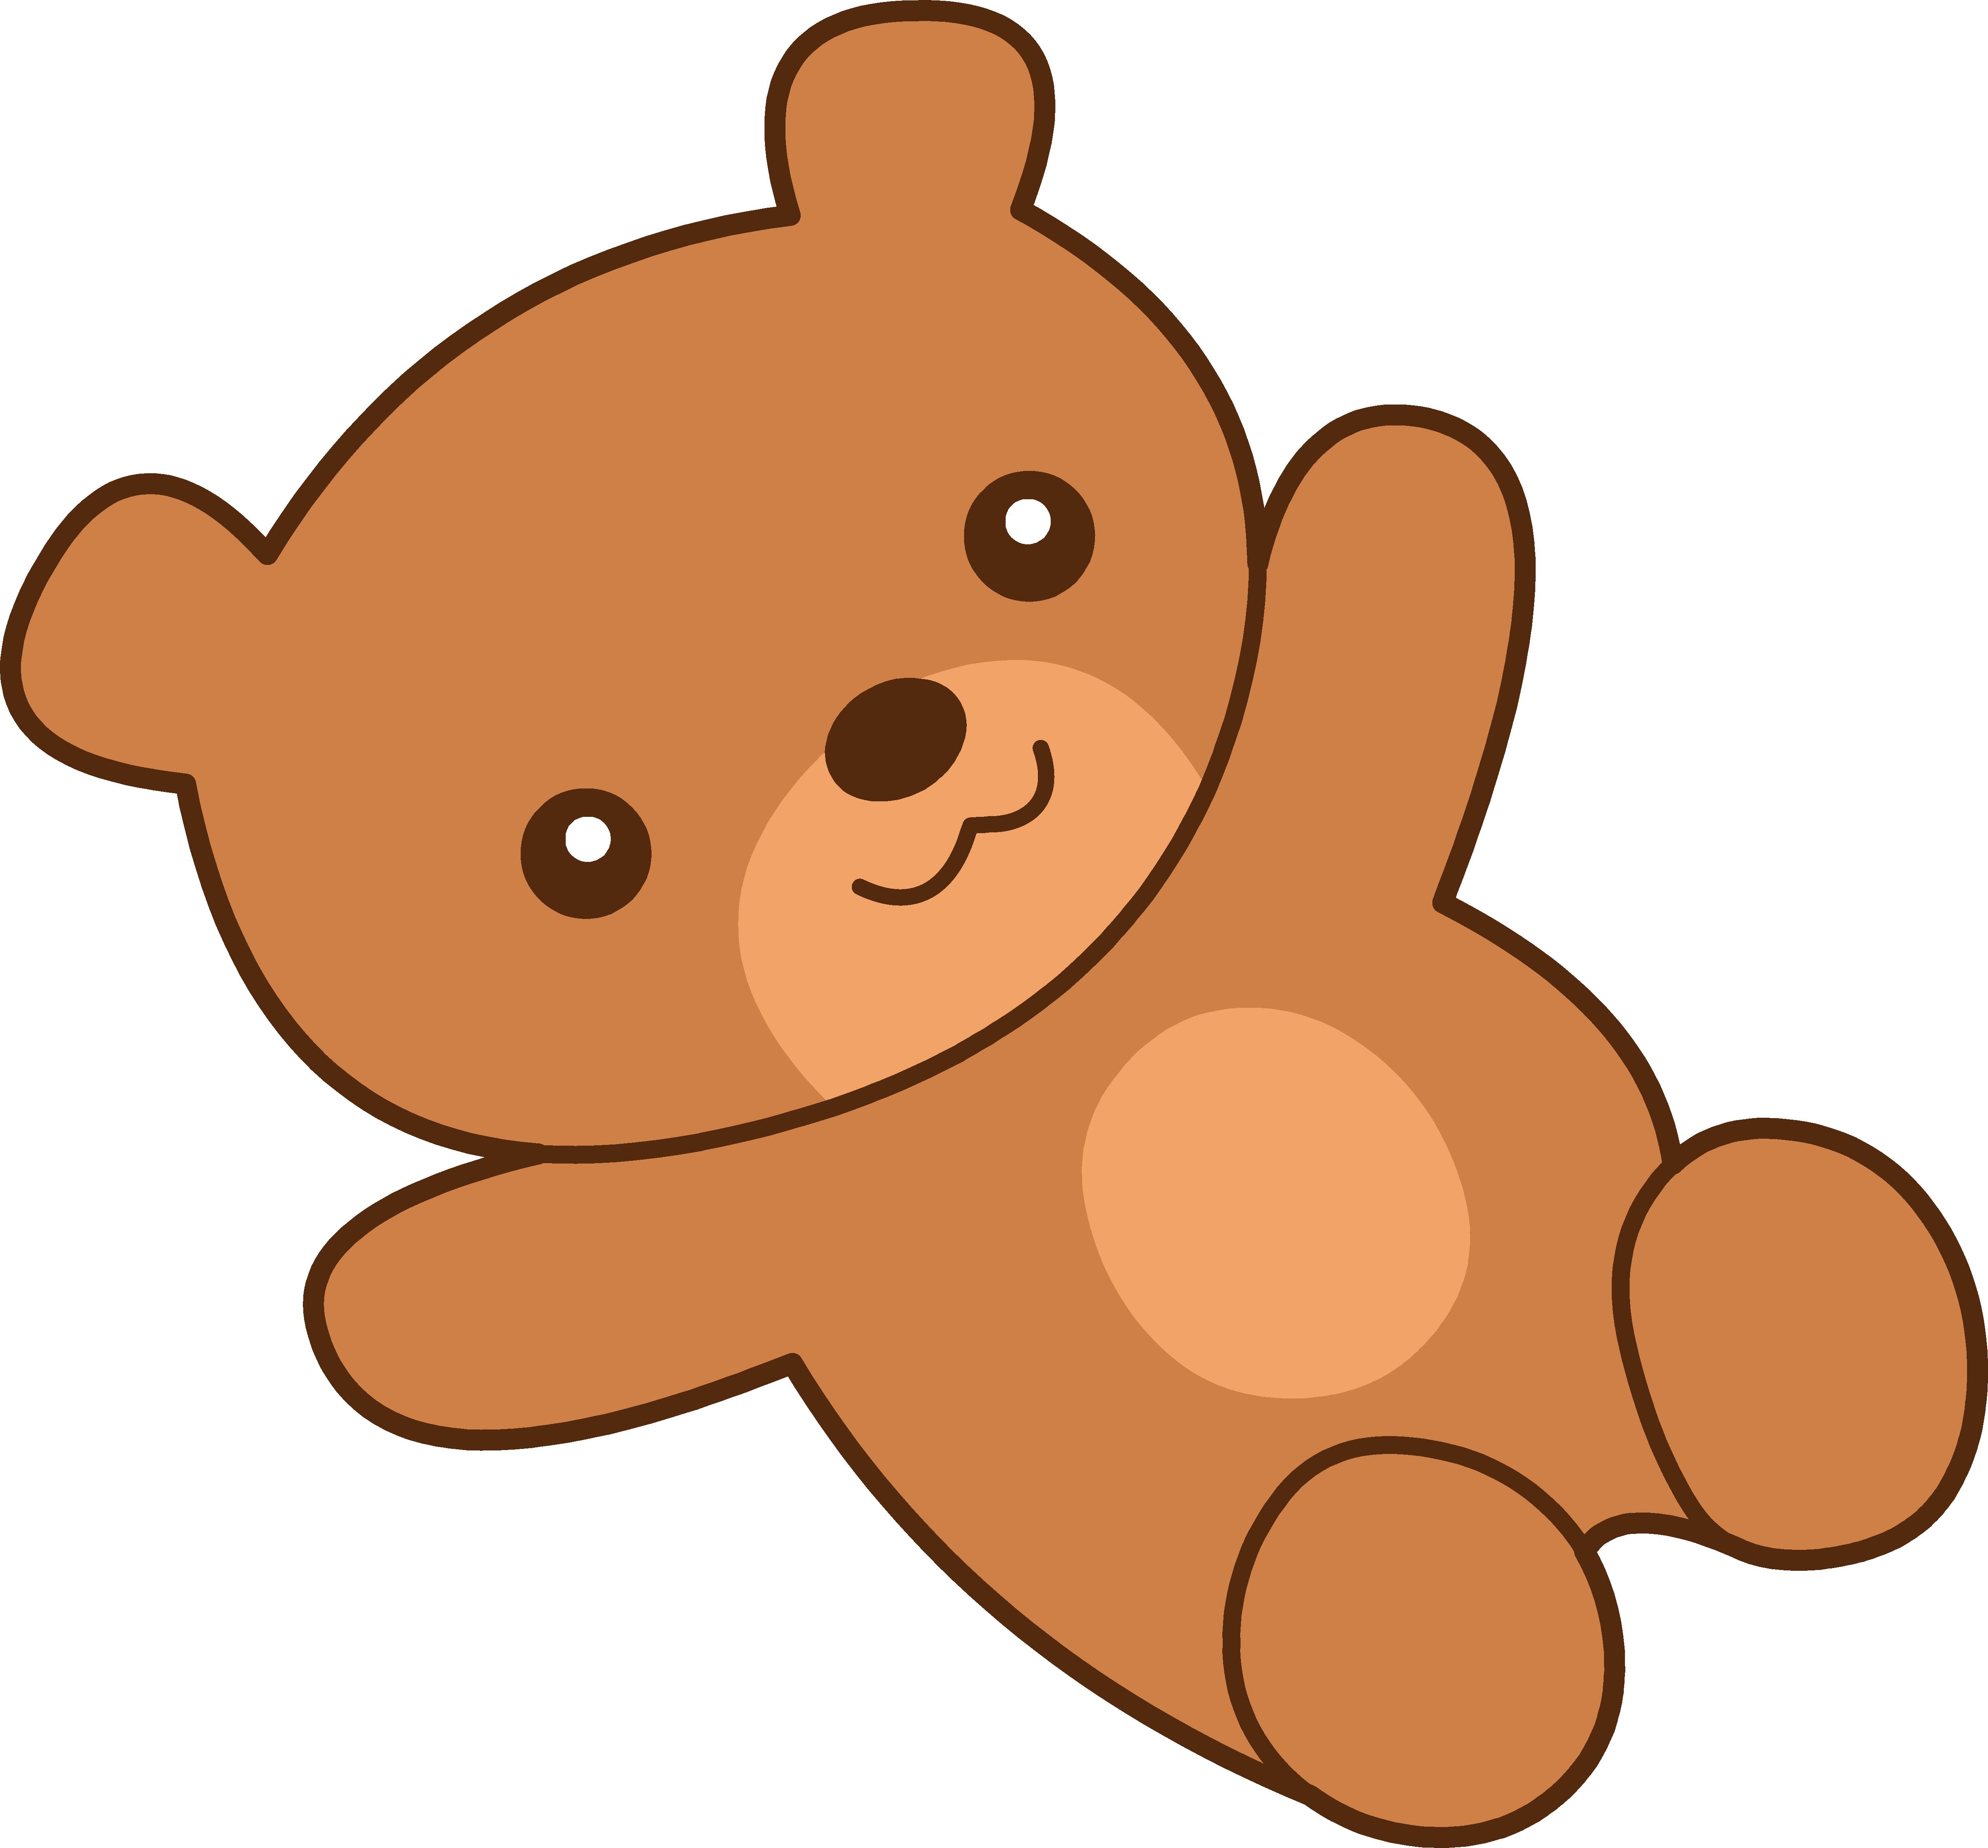 Free Teddy Bears Clipart, Download Free Clip Art, Free Clip.